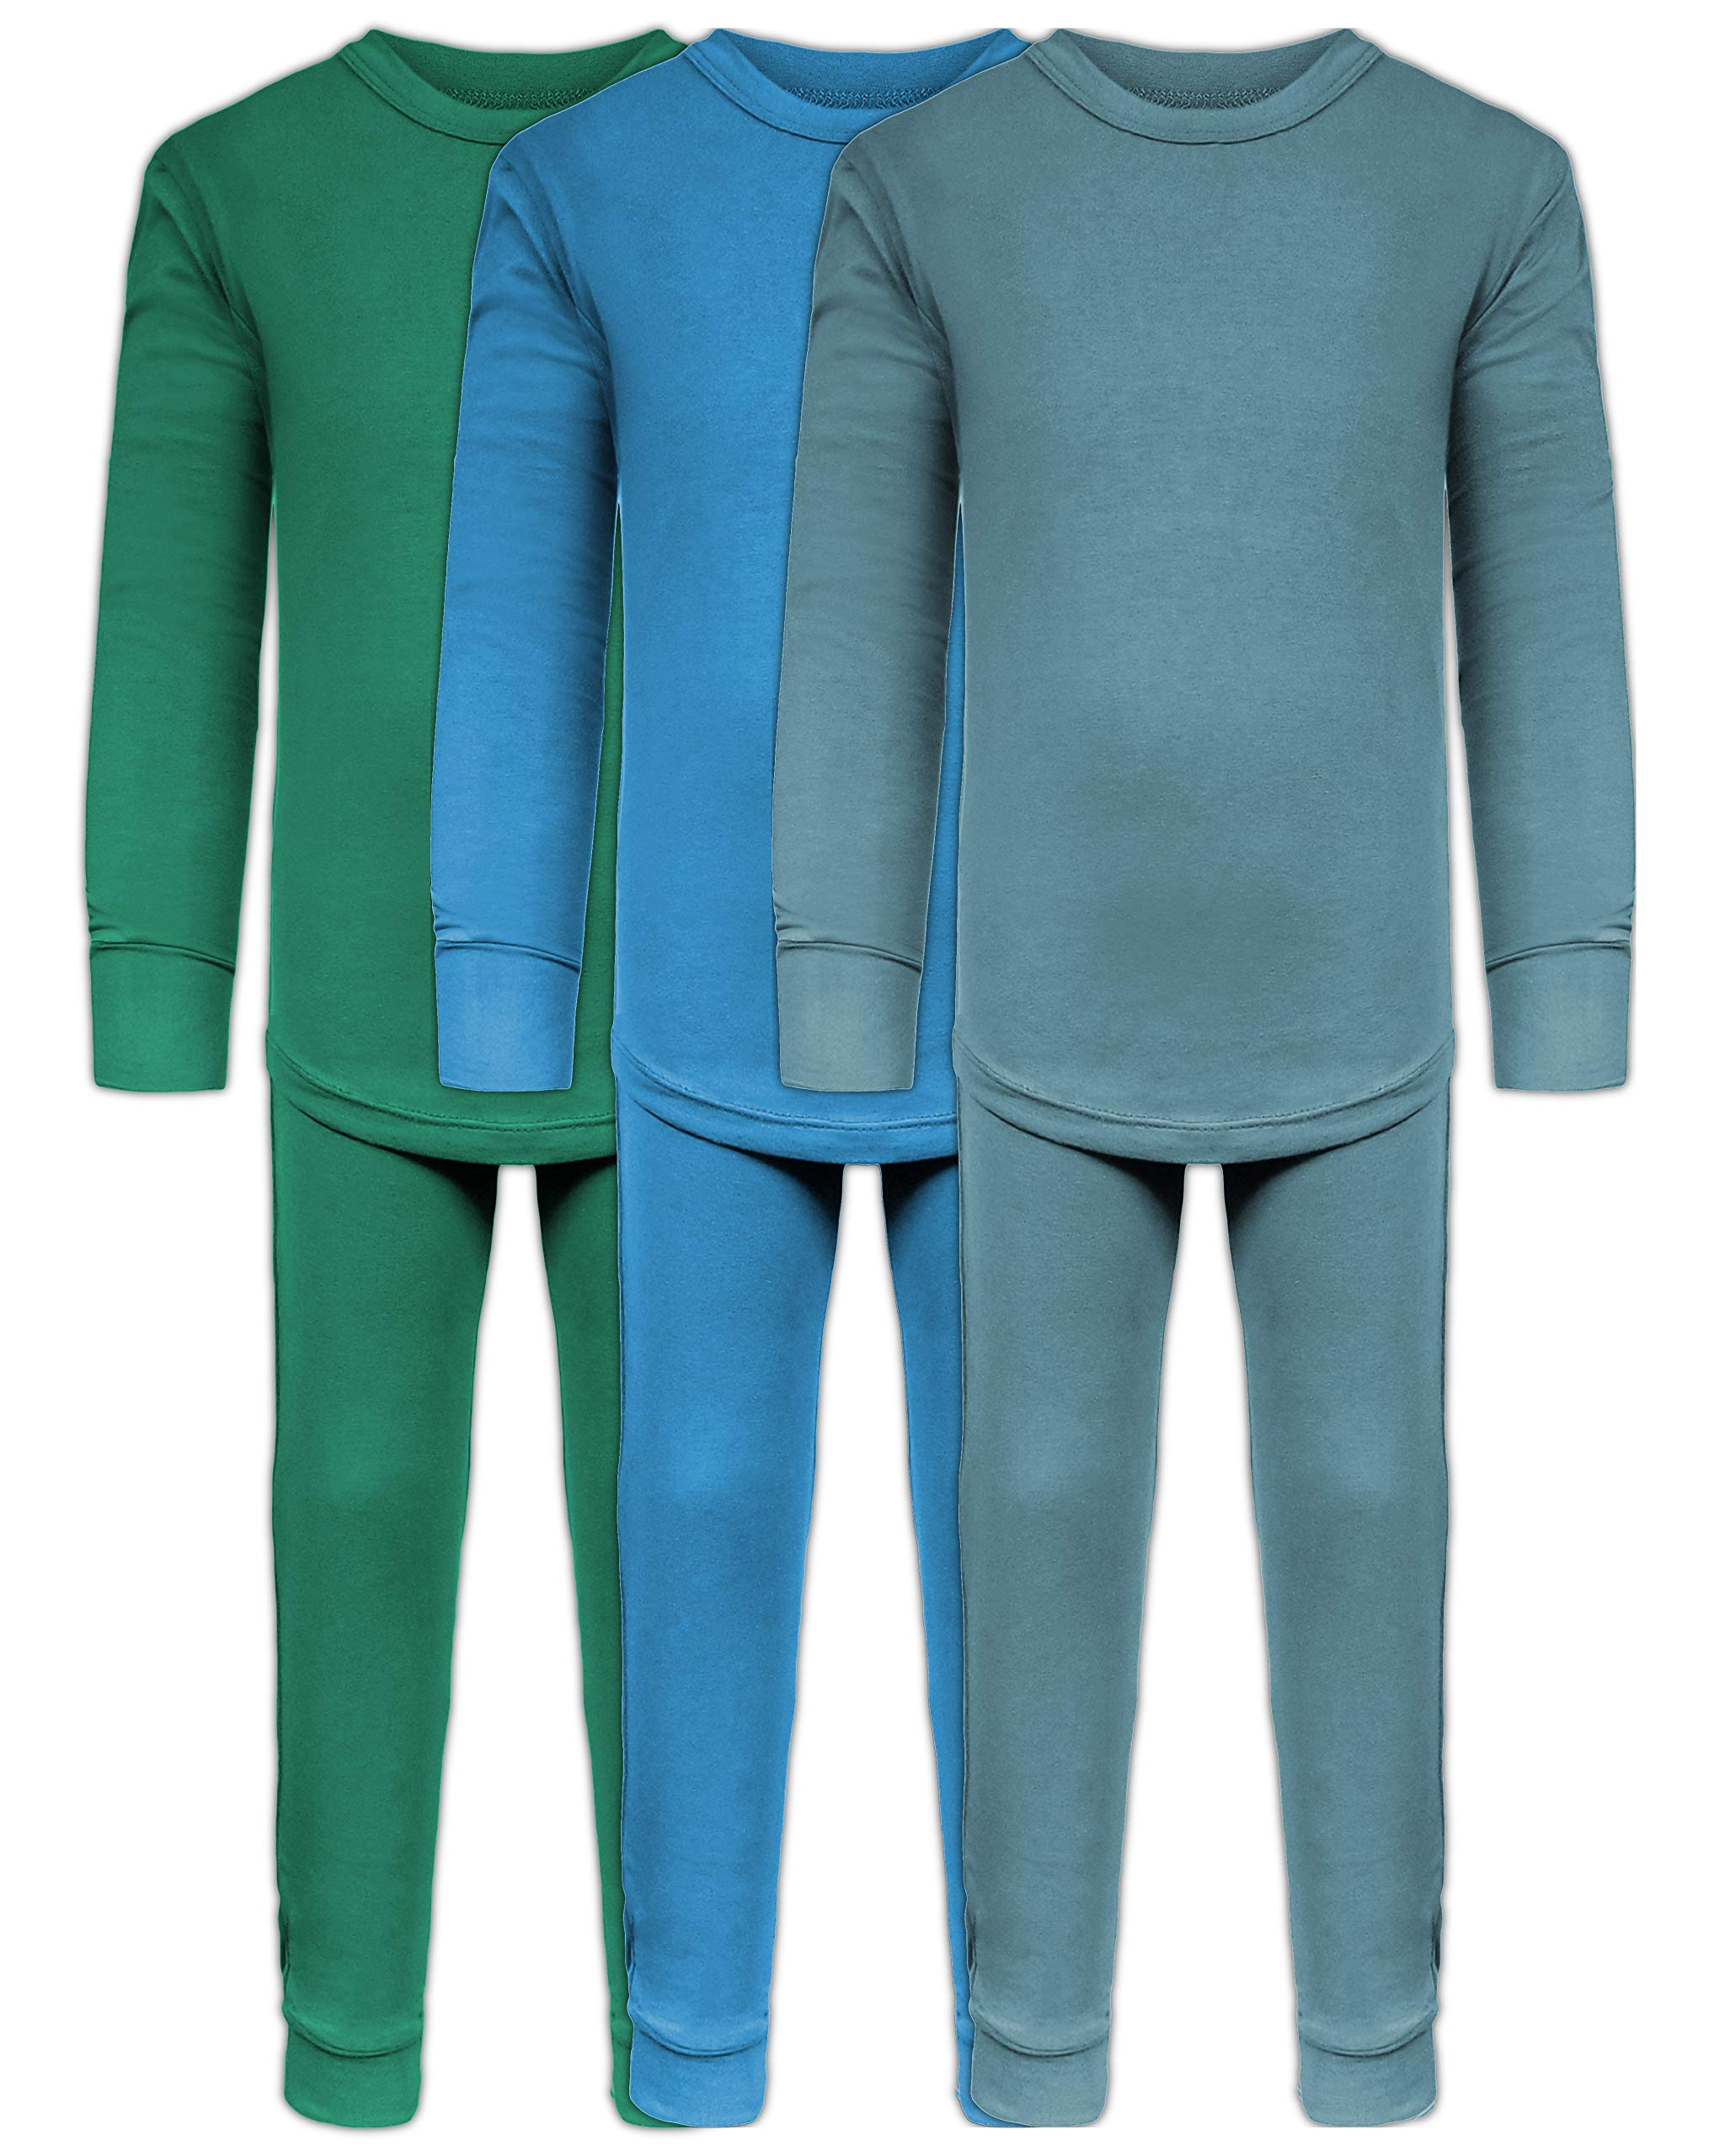 Boys Long John Ultra-Soft Cotton Stretch Base Layer Underwear Sets / 3 Long Sleeve Tops + 3 Long Pants - 6 Piece Mix & Match (3 Sets / 6 Pc - Evergreen/Blue/Arctic, 2T/3T) by ANDREW SCOTT